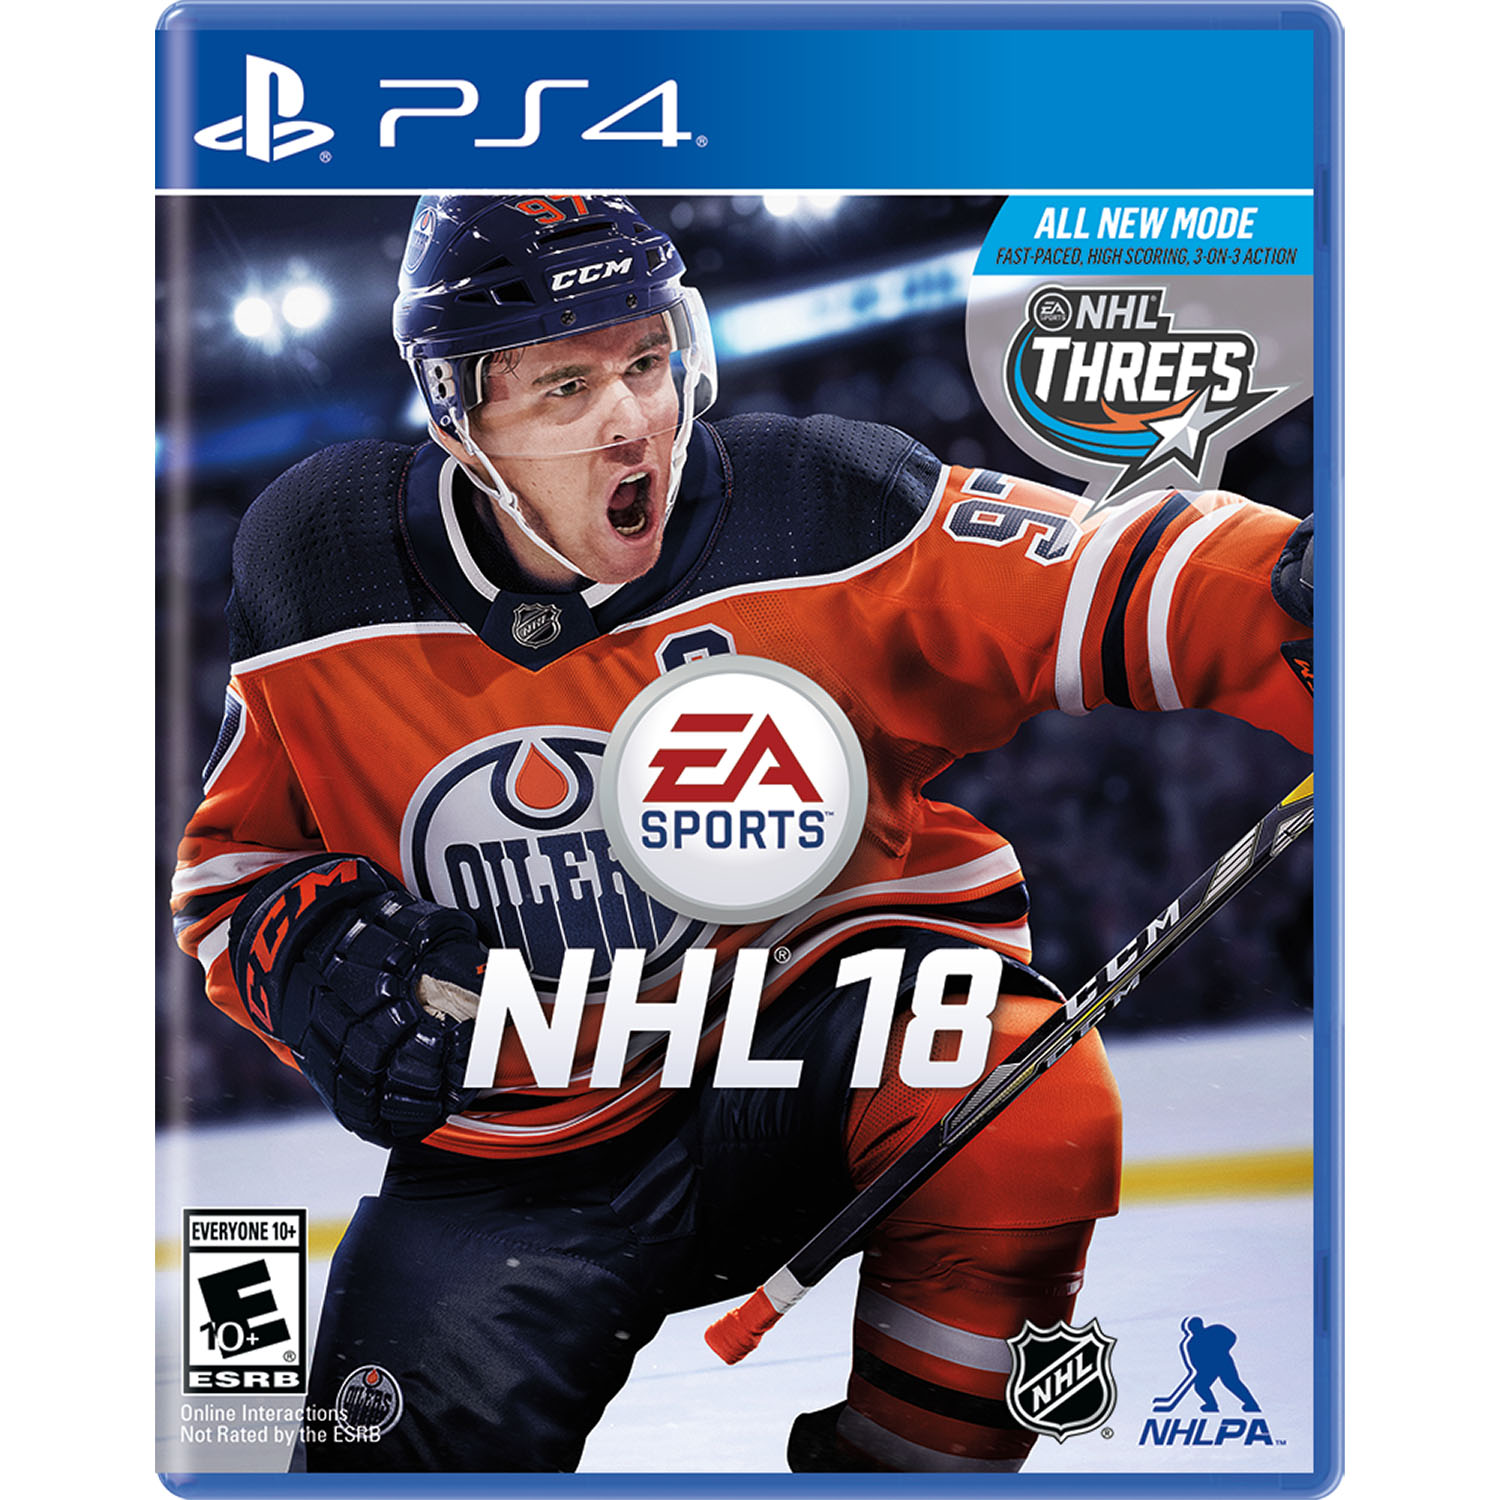 NHL 18, Electronic Arts, PlayStation 4, REFURBISHED/PREOWNED